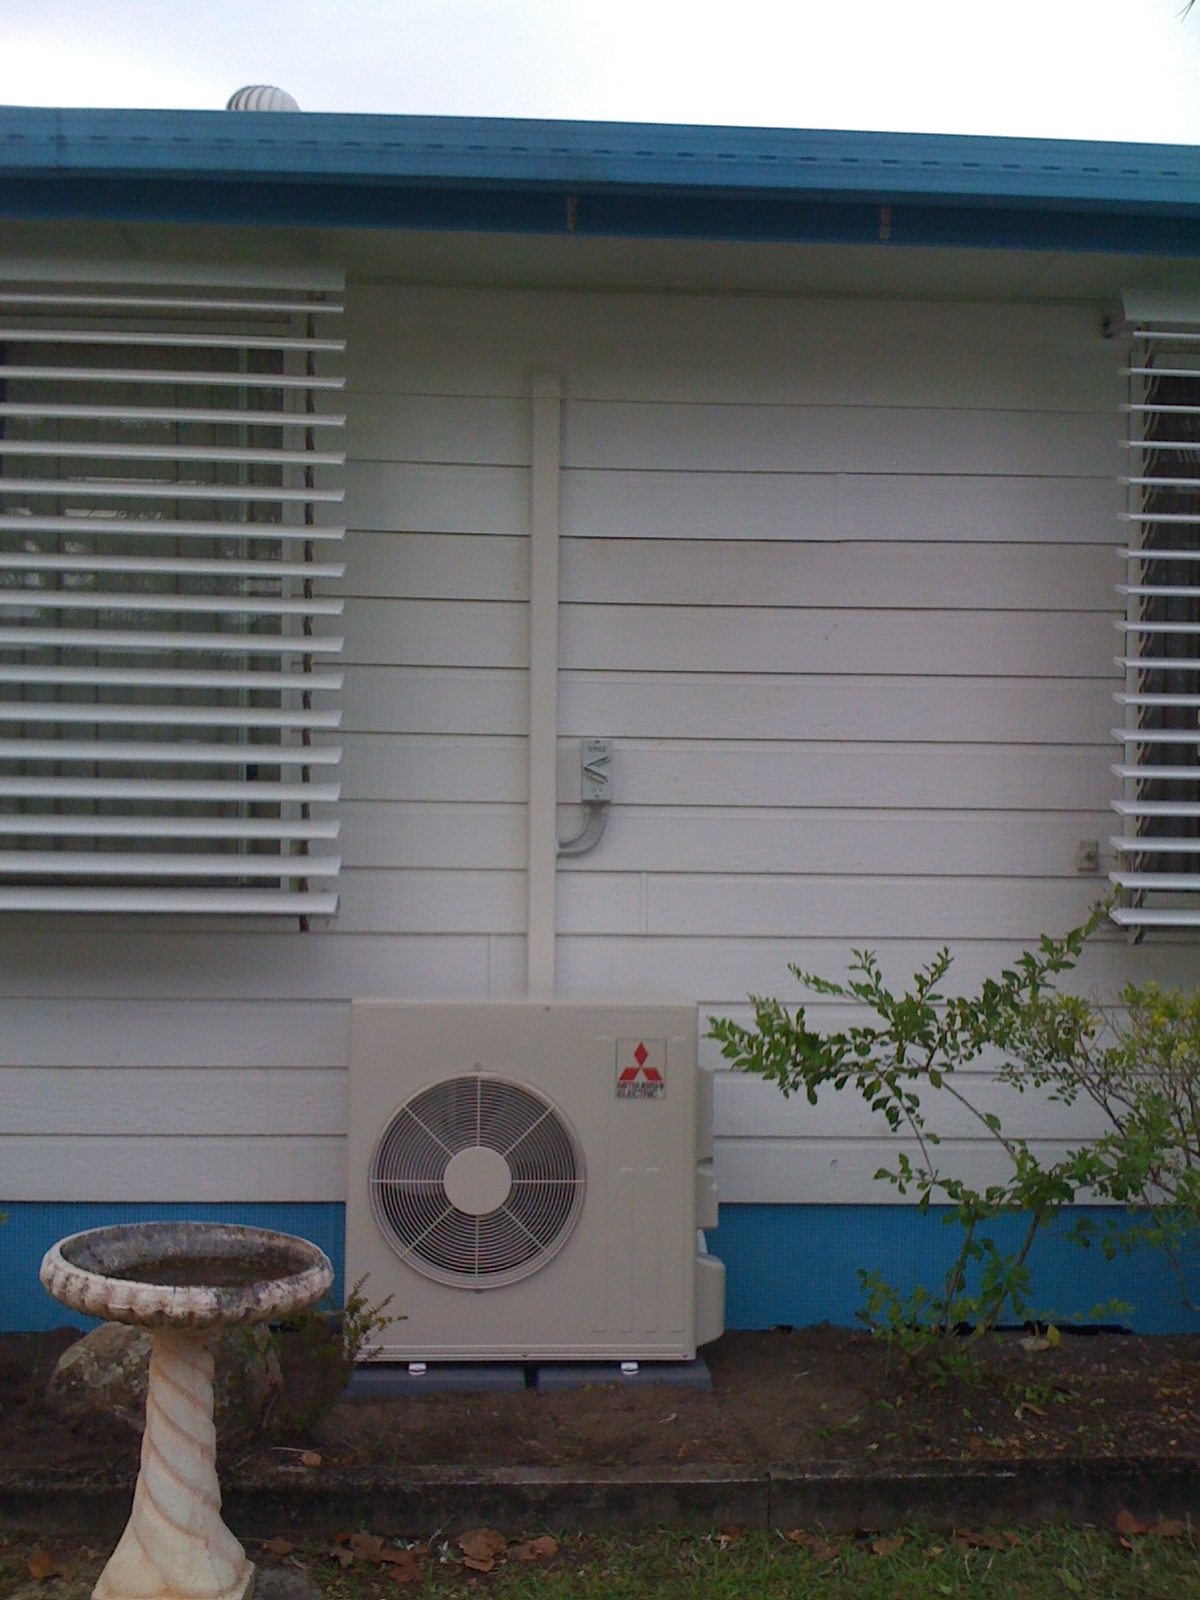 #2D5A9E Mitsubishi Electric Air Conditioner Air Conditioning  Most Effective 8375 Air Conditioning Brisbane Mitsubishi pictures with 1200x1600 px on helpvideos.info - Air Conditioners, Air Coolers and more